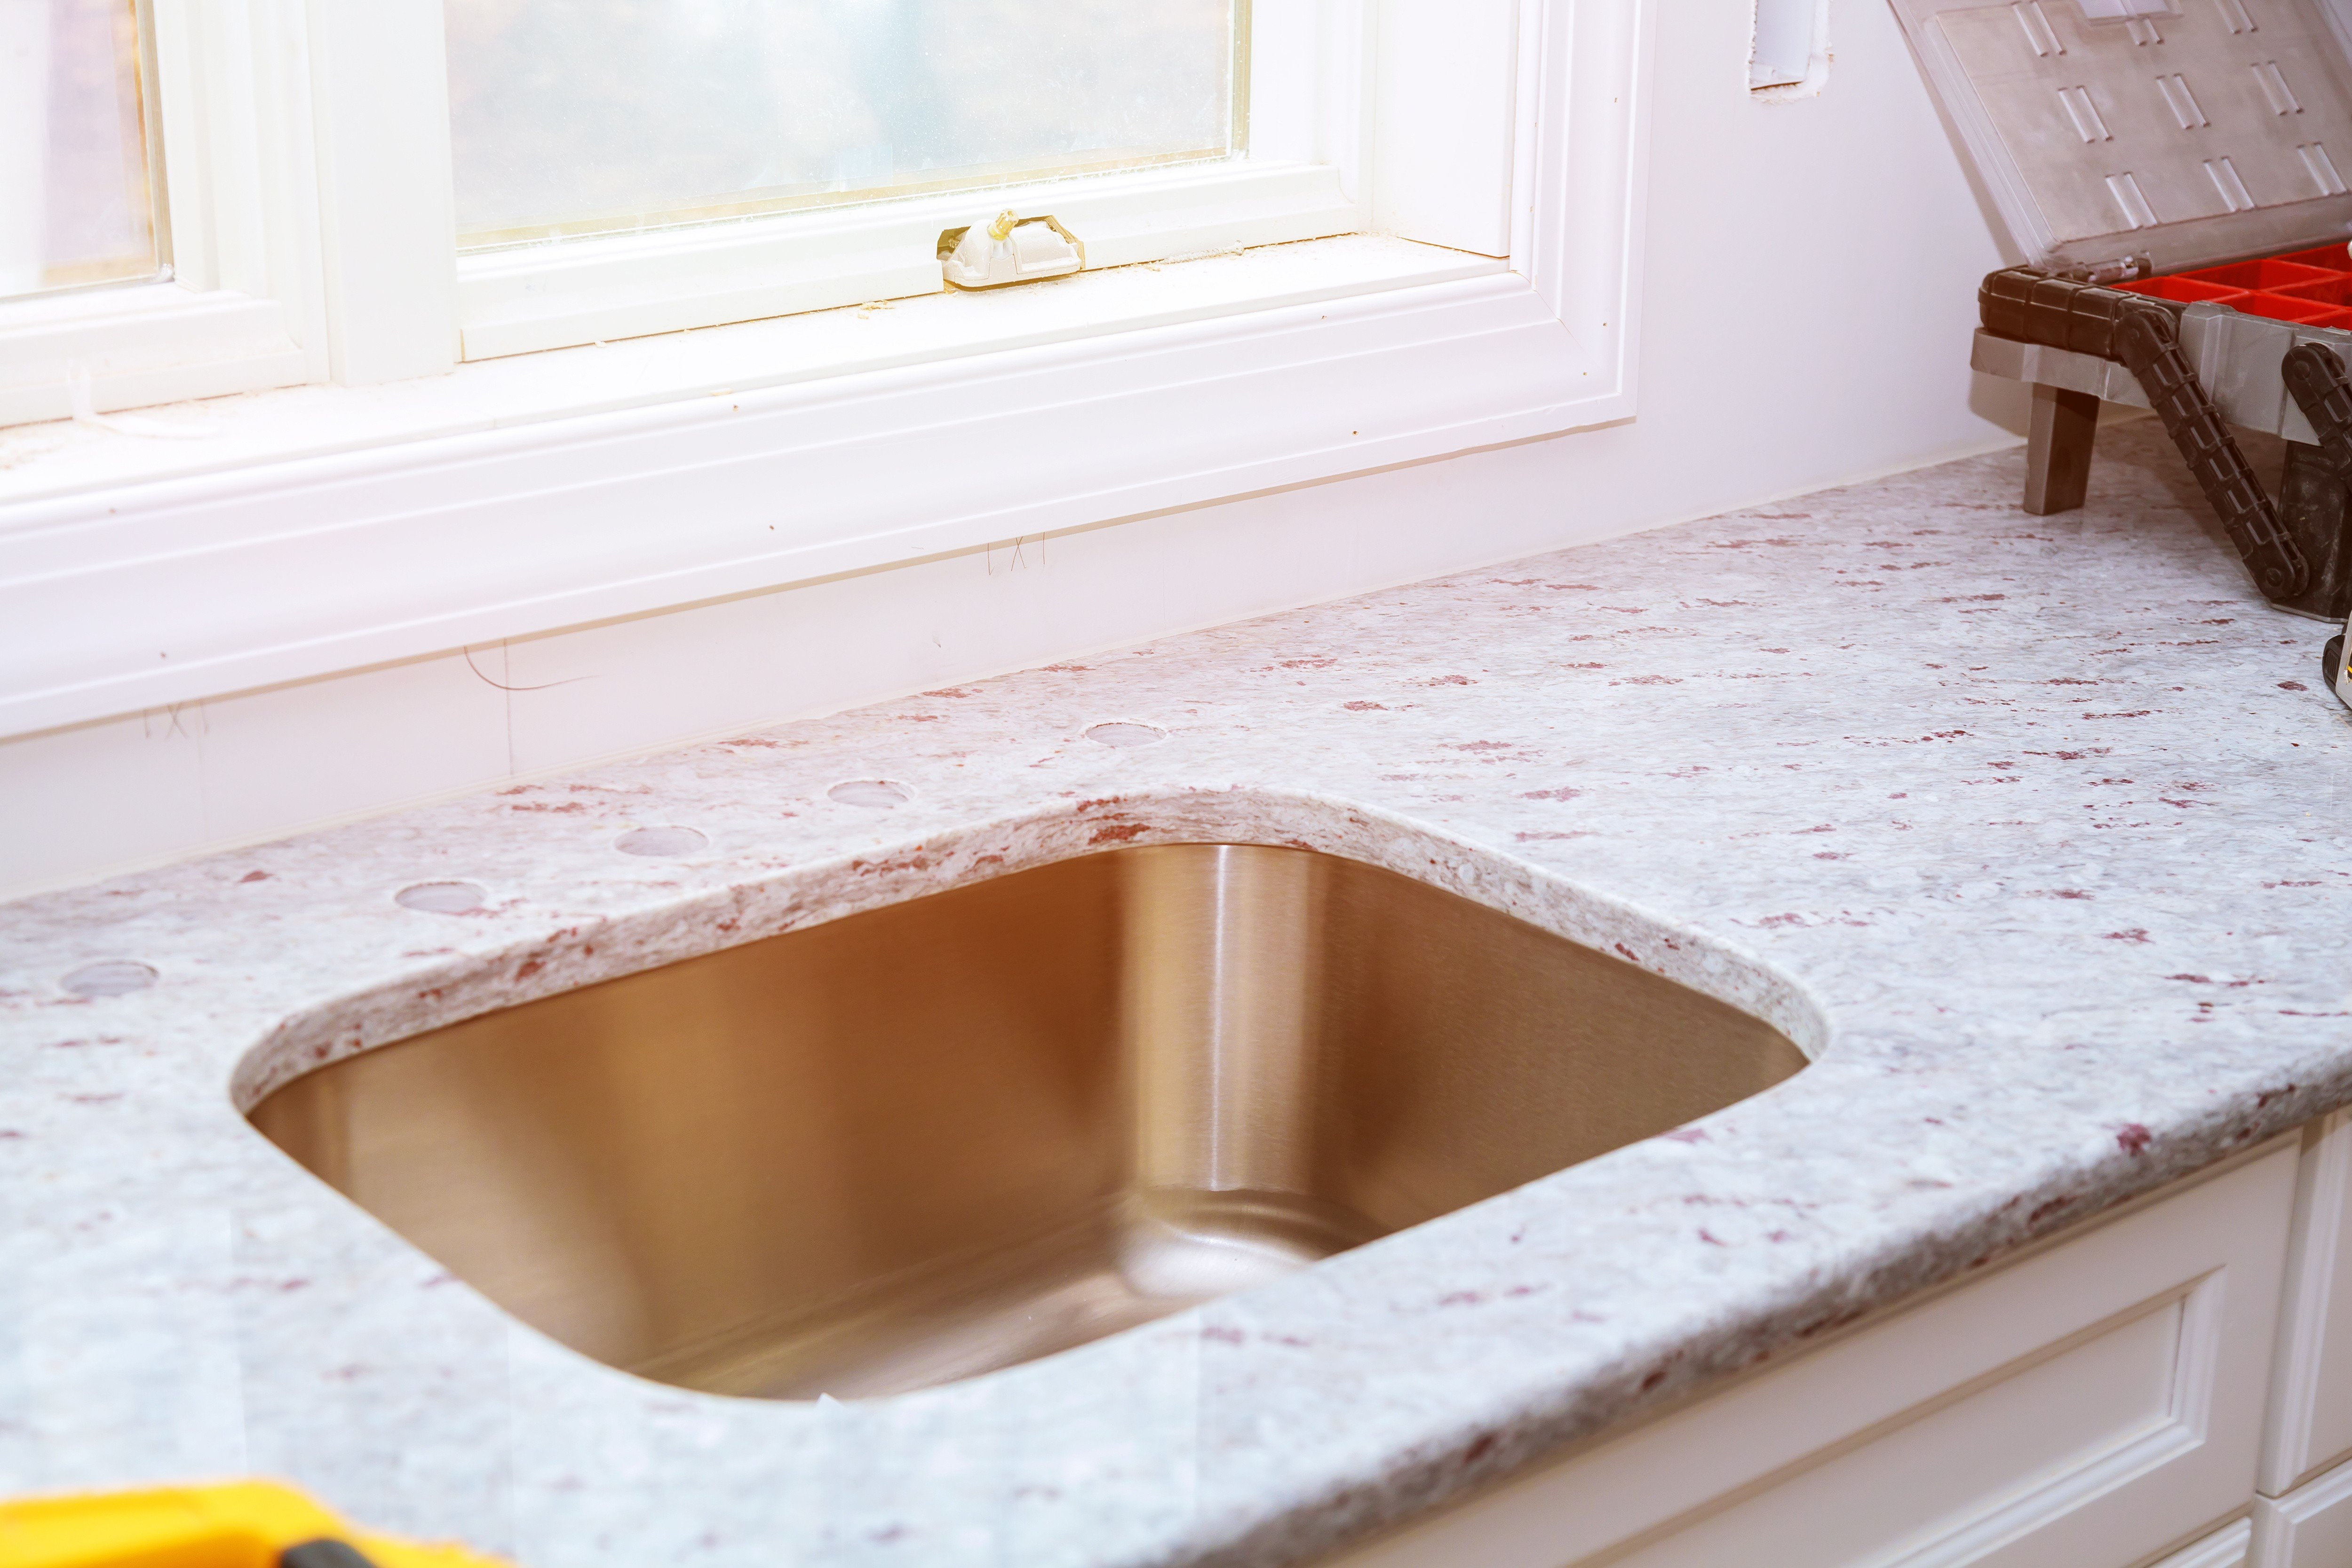 Why Use Formica For My Countertops